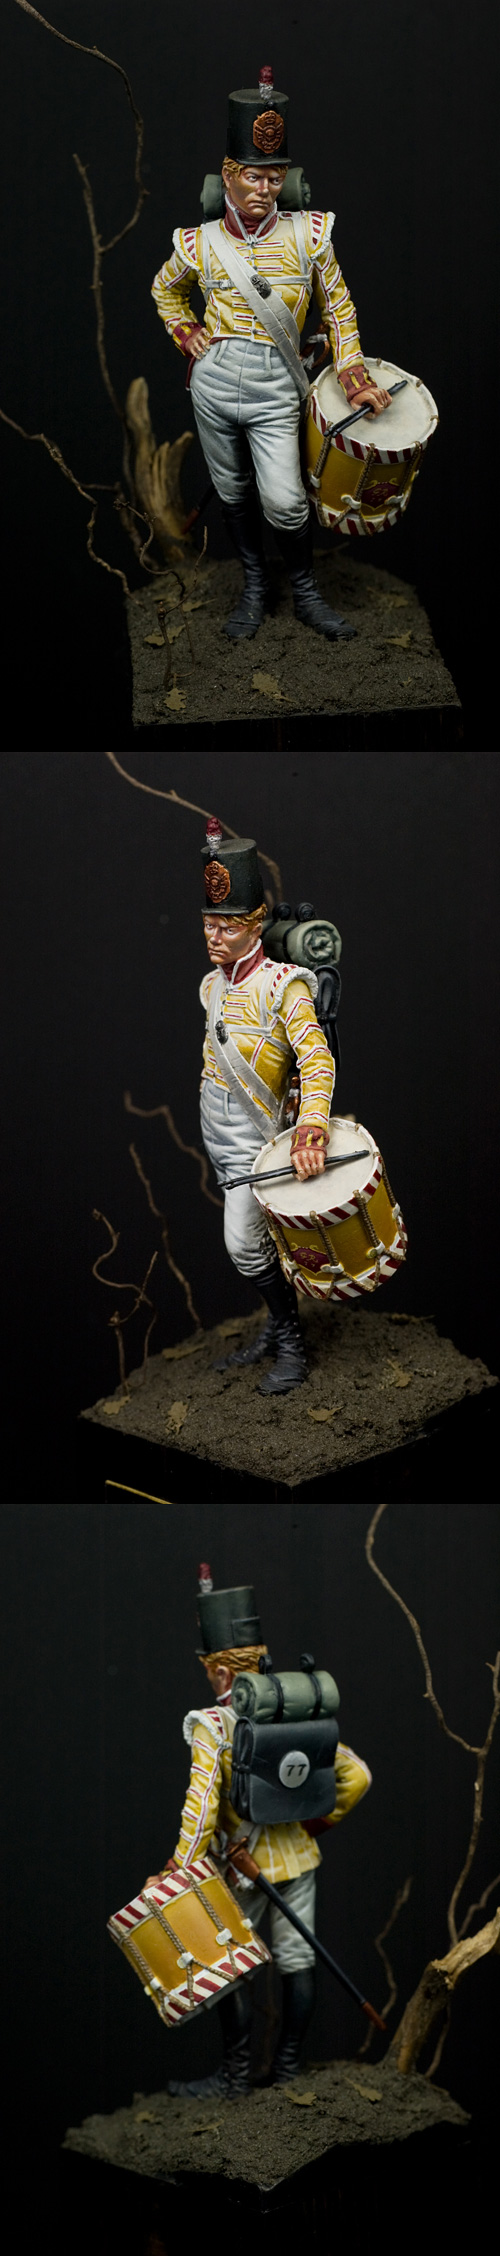 77th Regiment Drummer